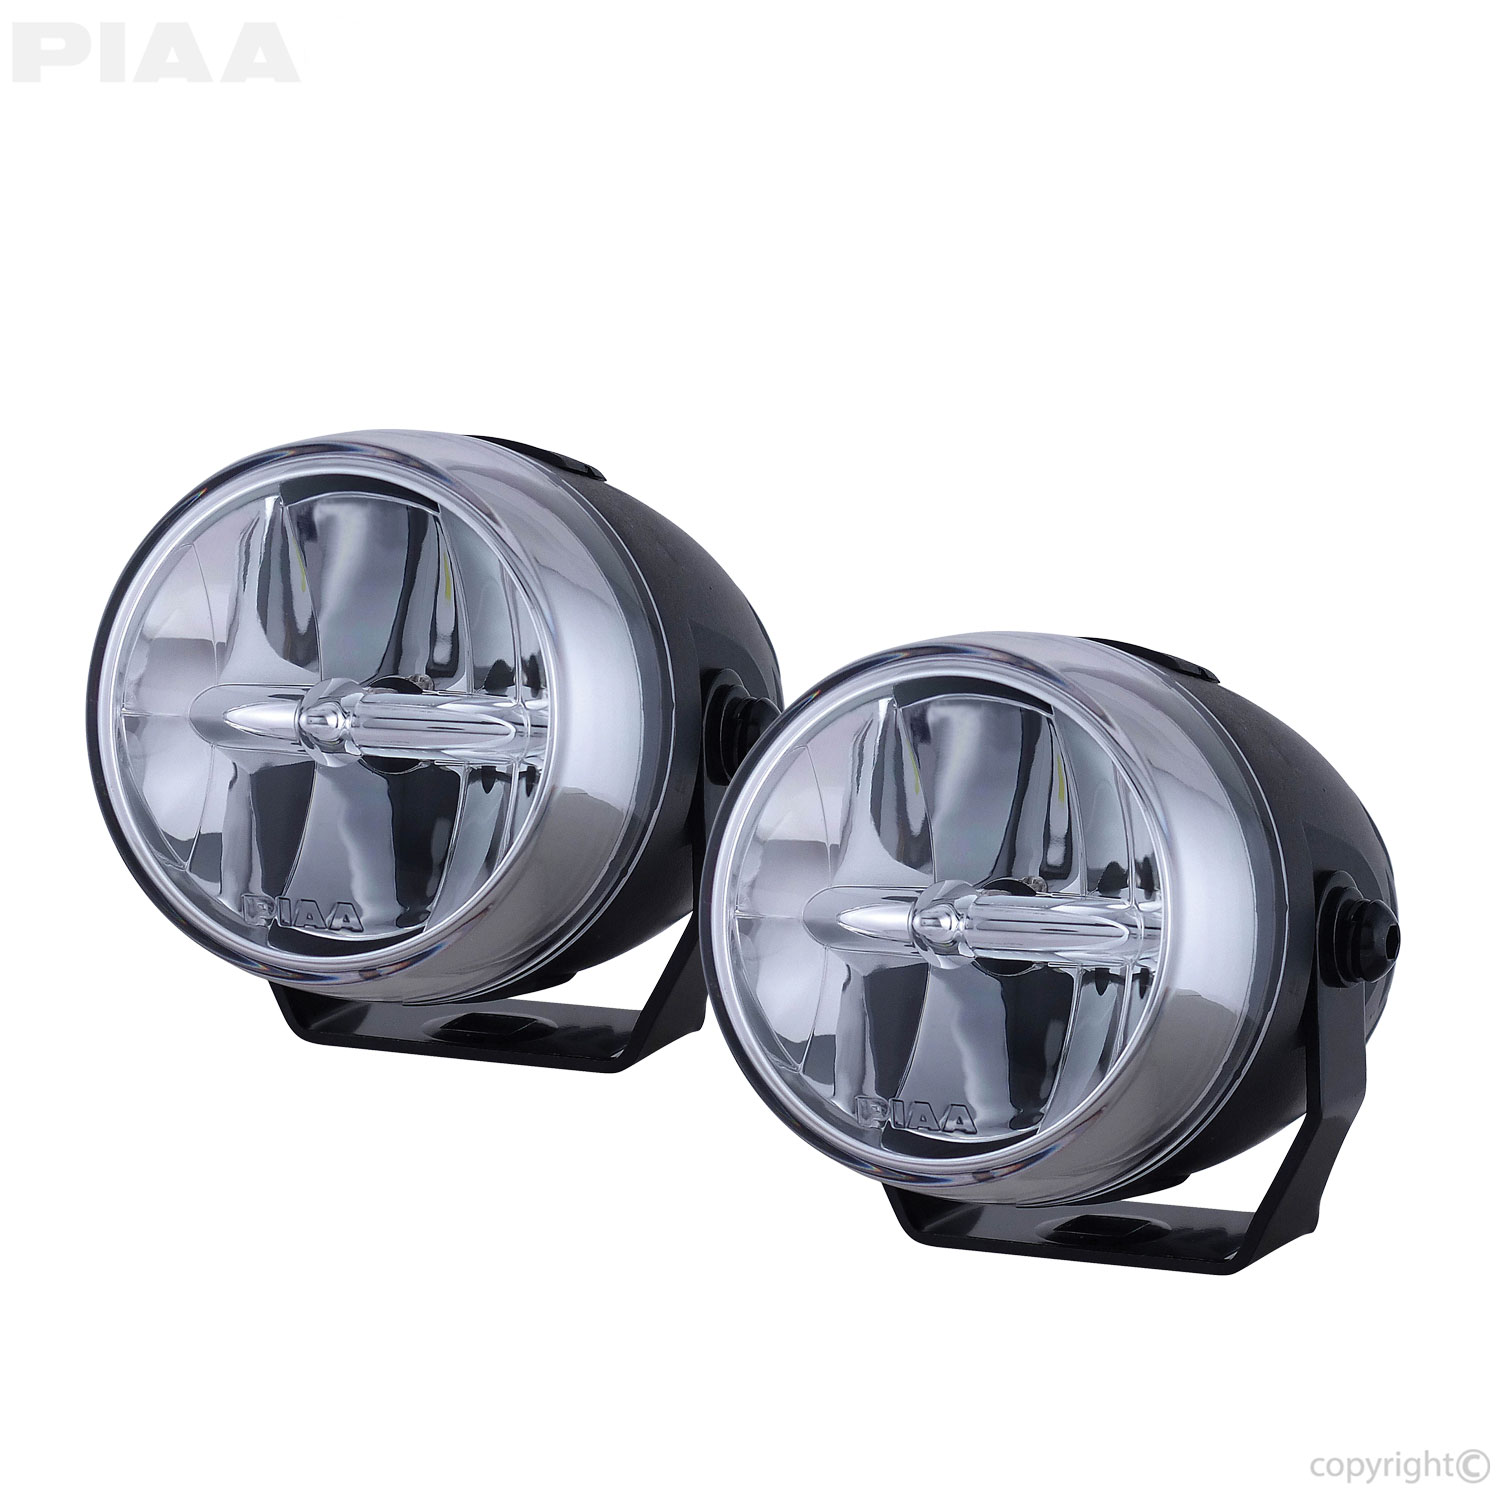 "LP270 2.75"" LED Fog Light Kit, SAE Compliant - 73270"